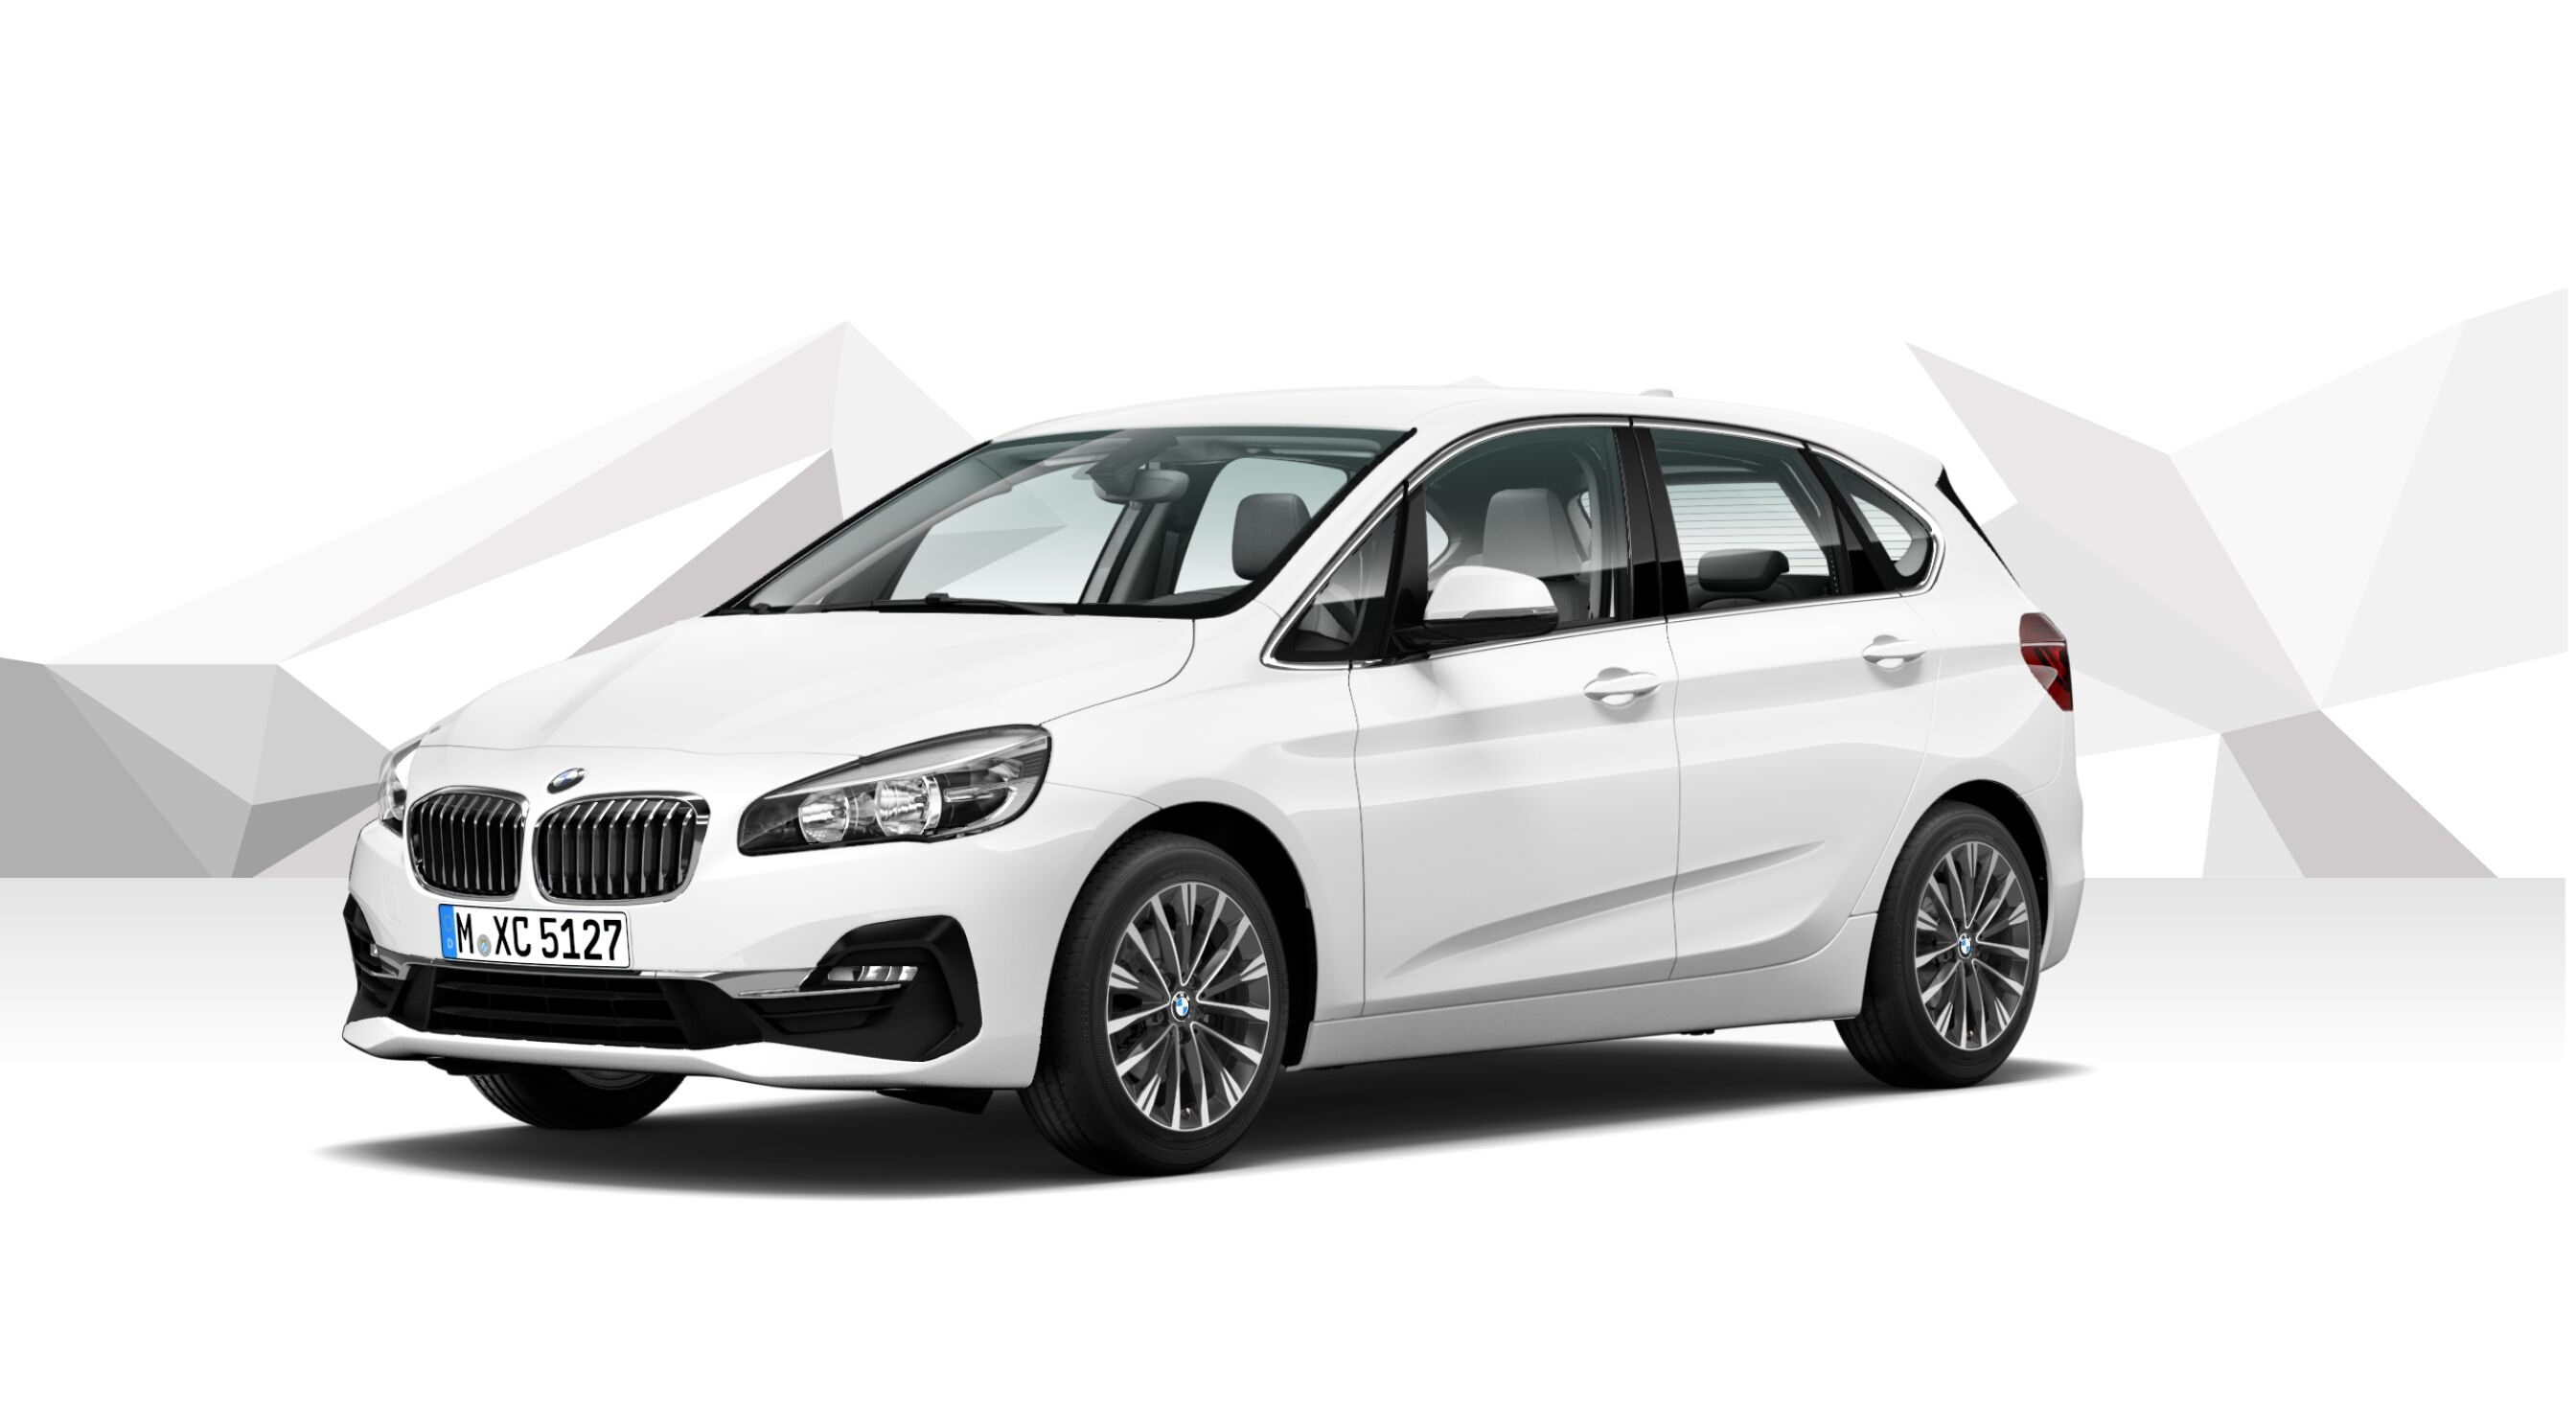 BMW BMW 218i Luxury Active Tourer